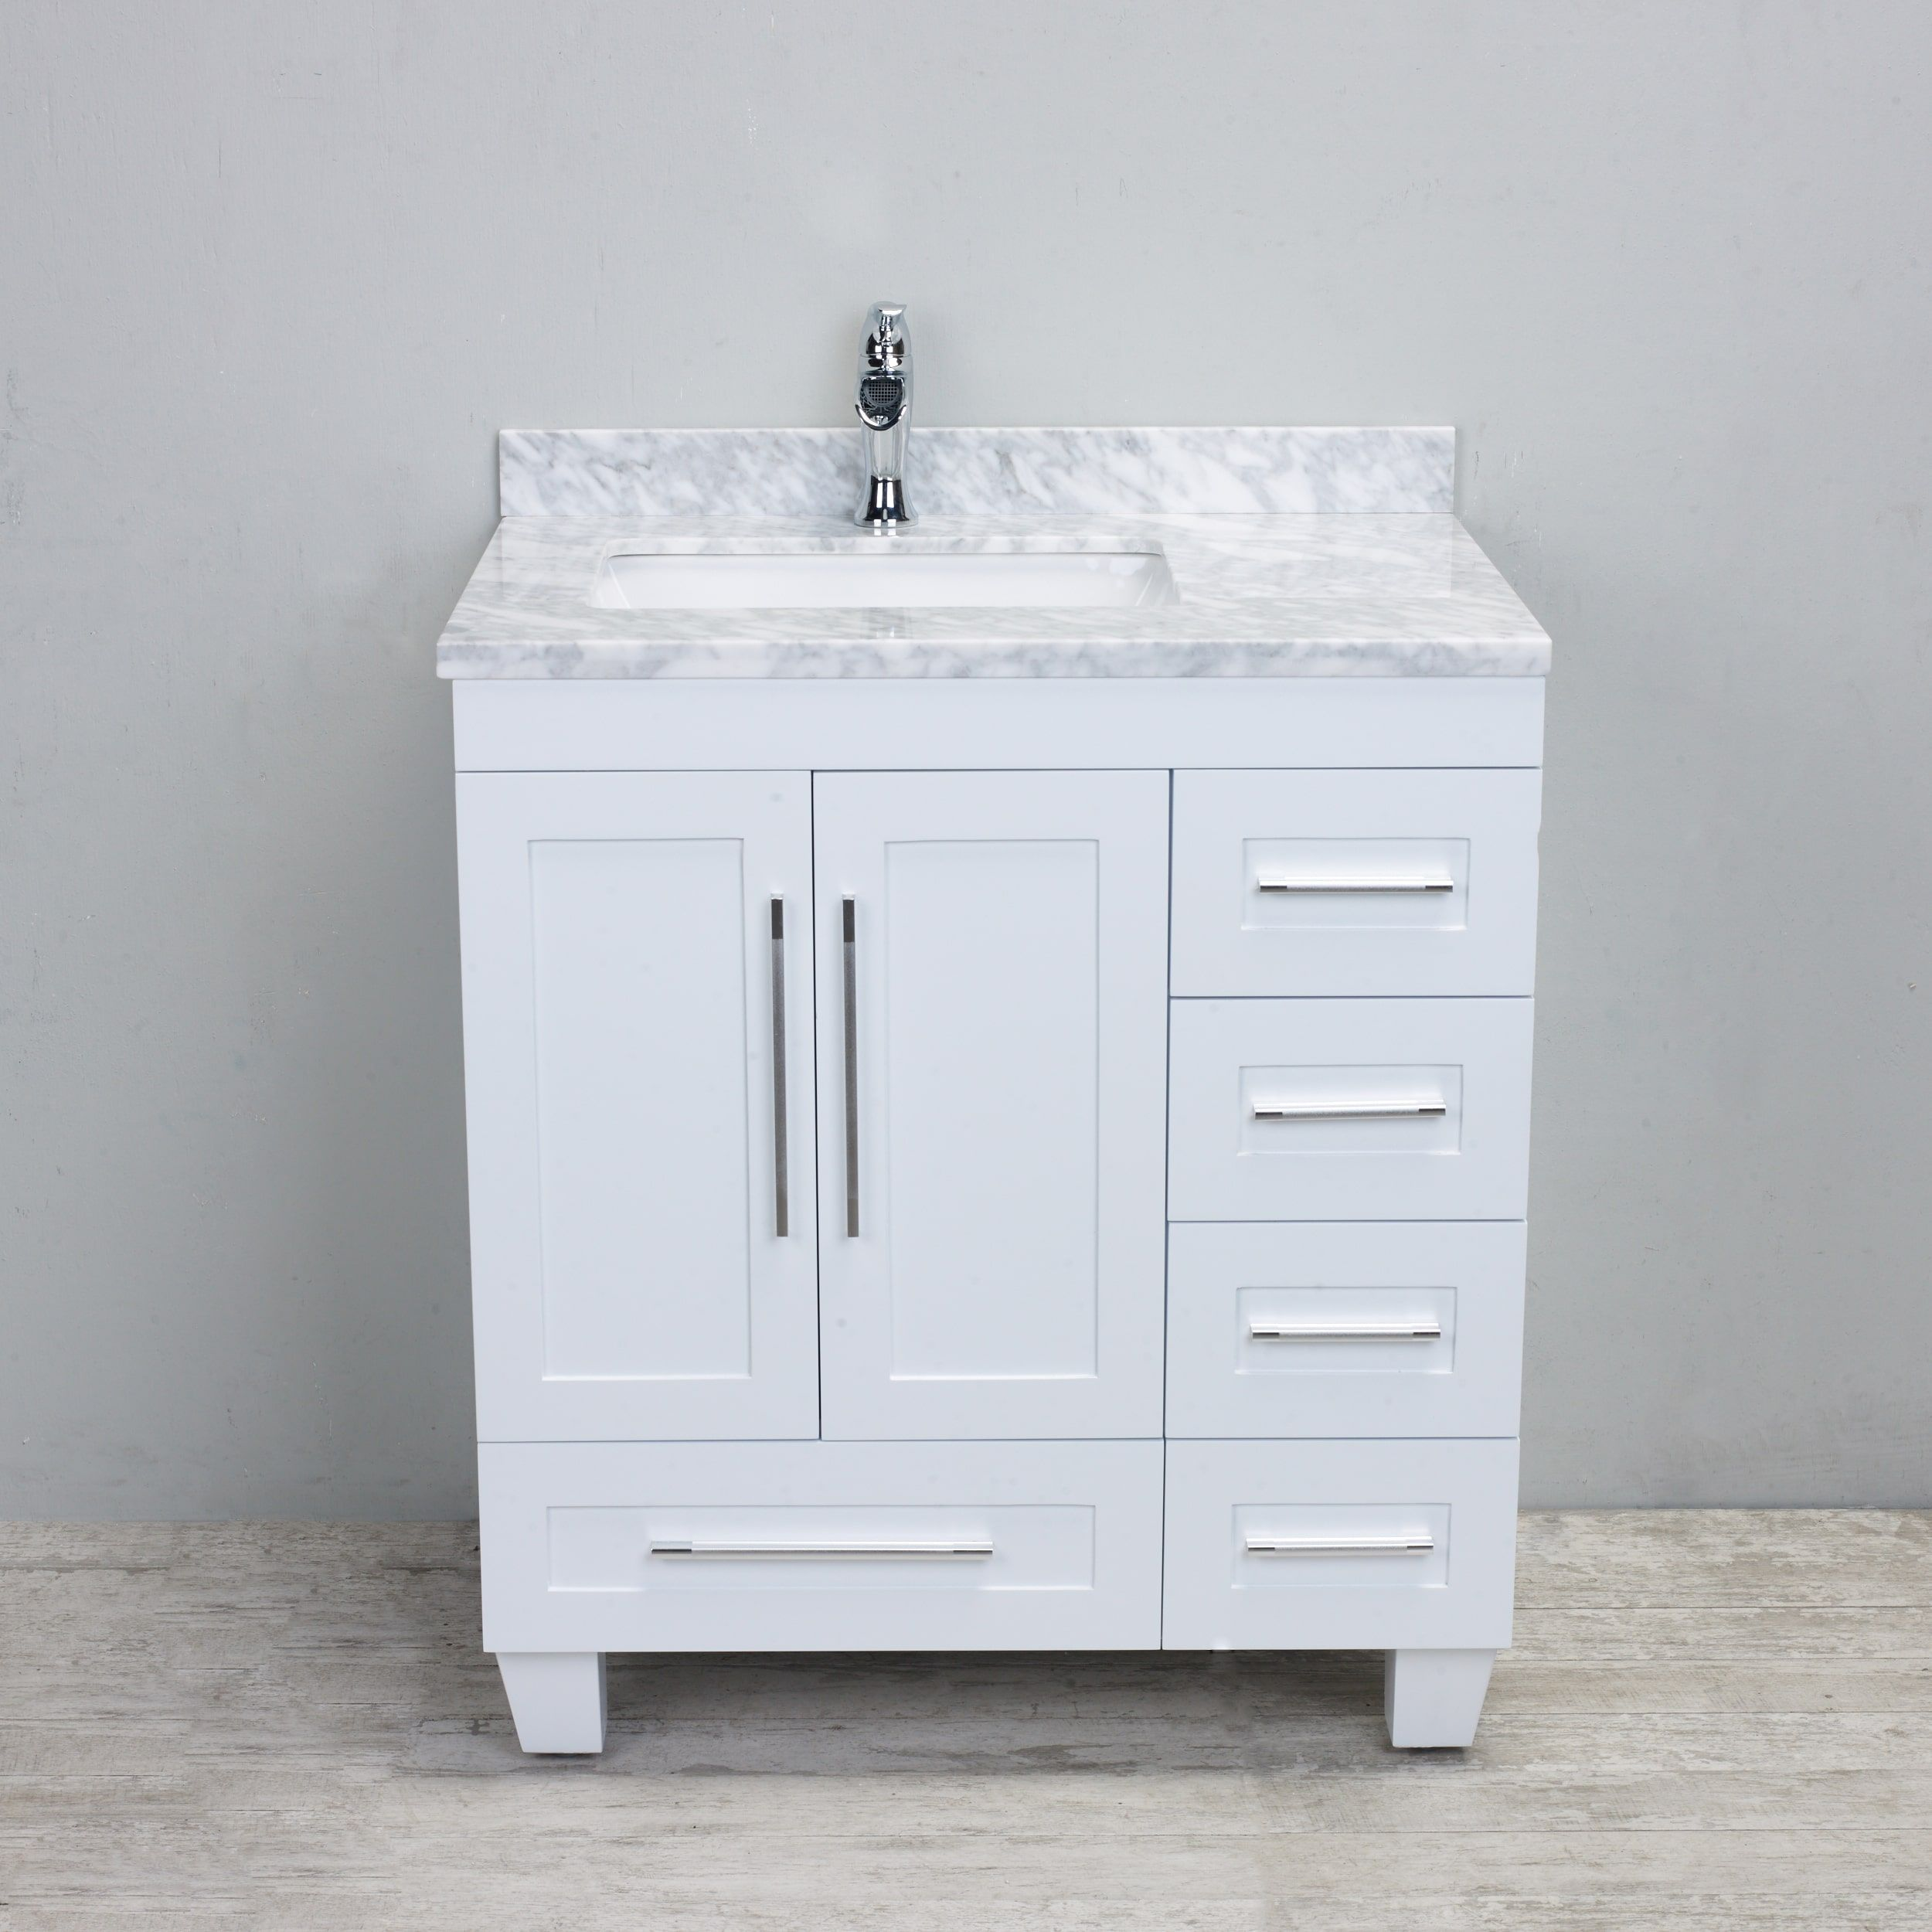 Eviva Loon Transitional White 30Inch Bathroom Vanity With White Amazing Bathroom Vanity 30 Inch Inspiration Design